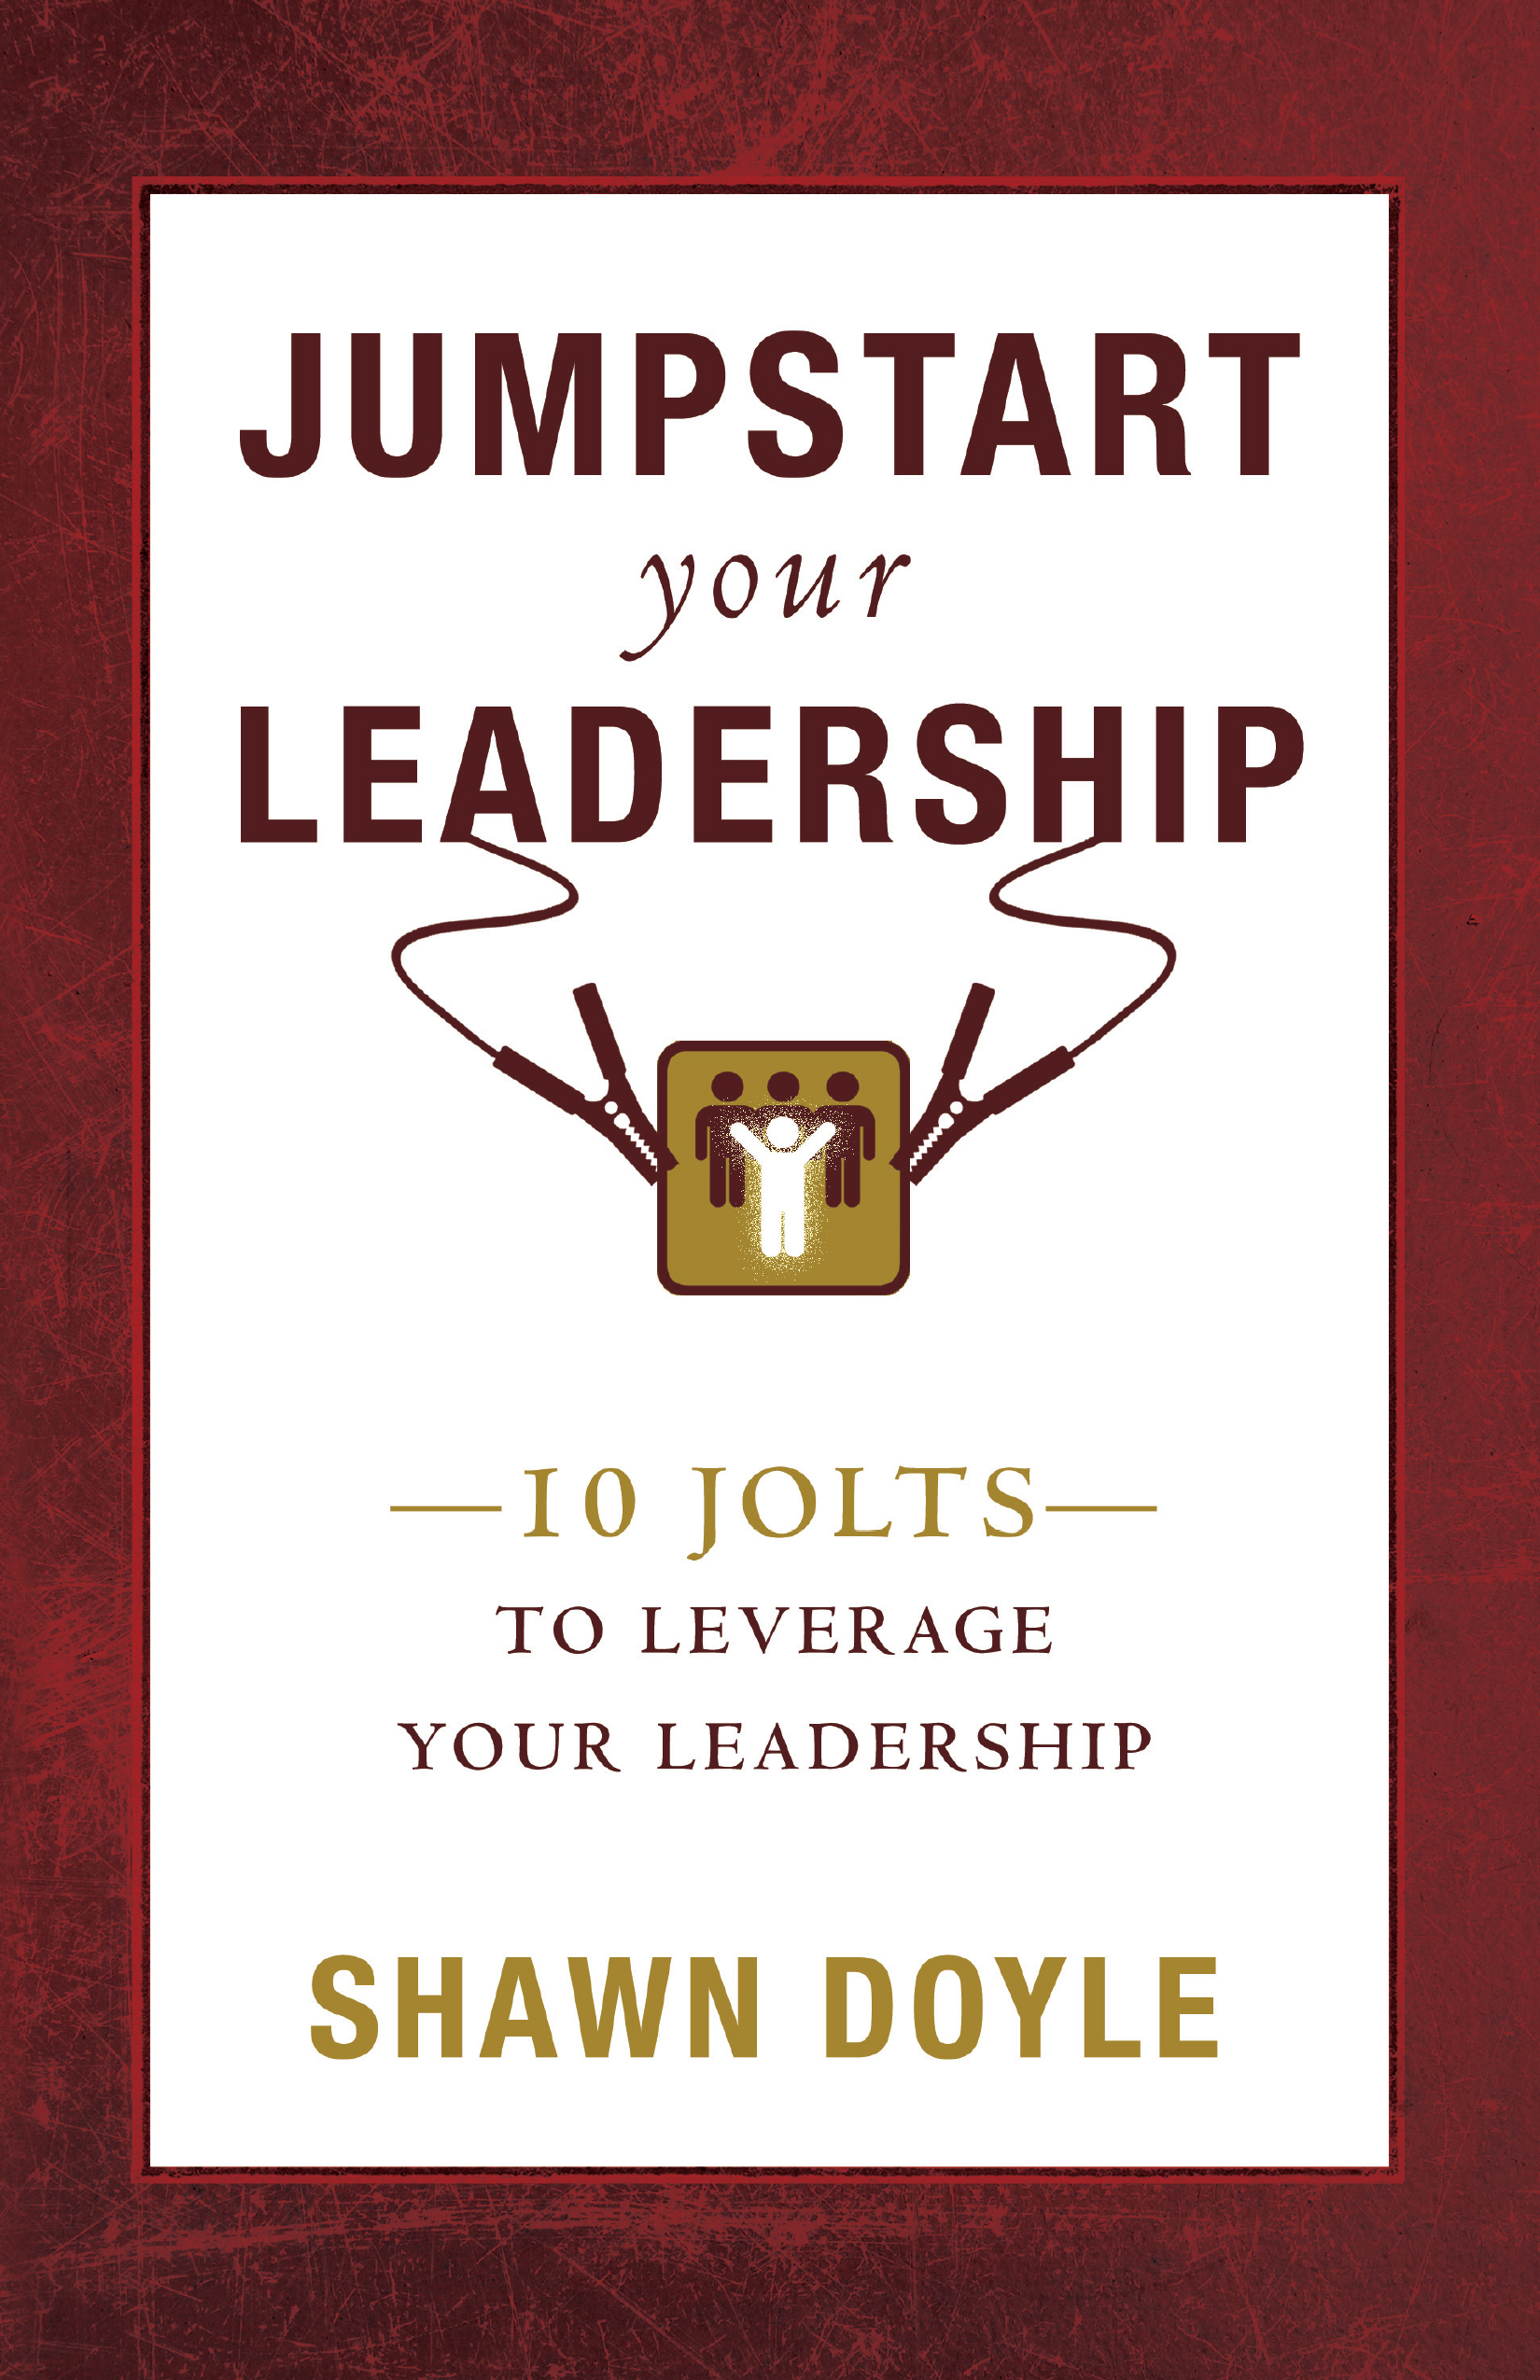 Jumpstart Your Leadership - By shawn doyle csp